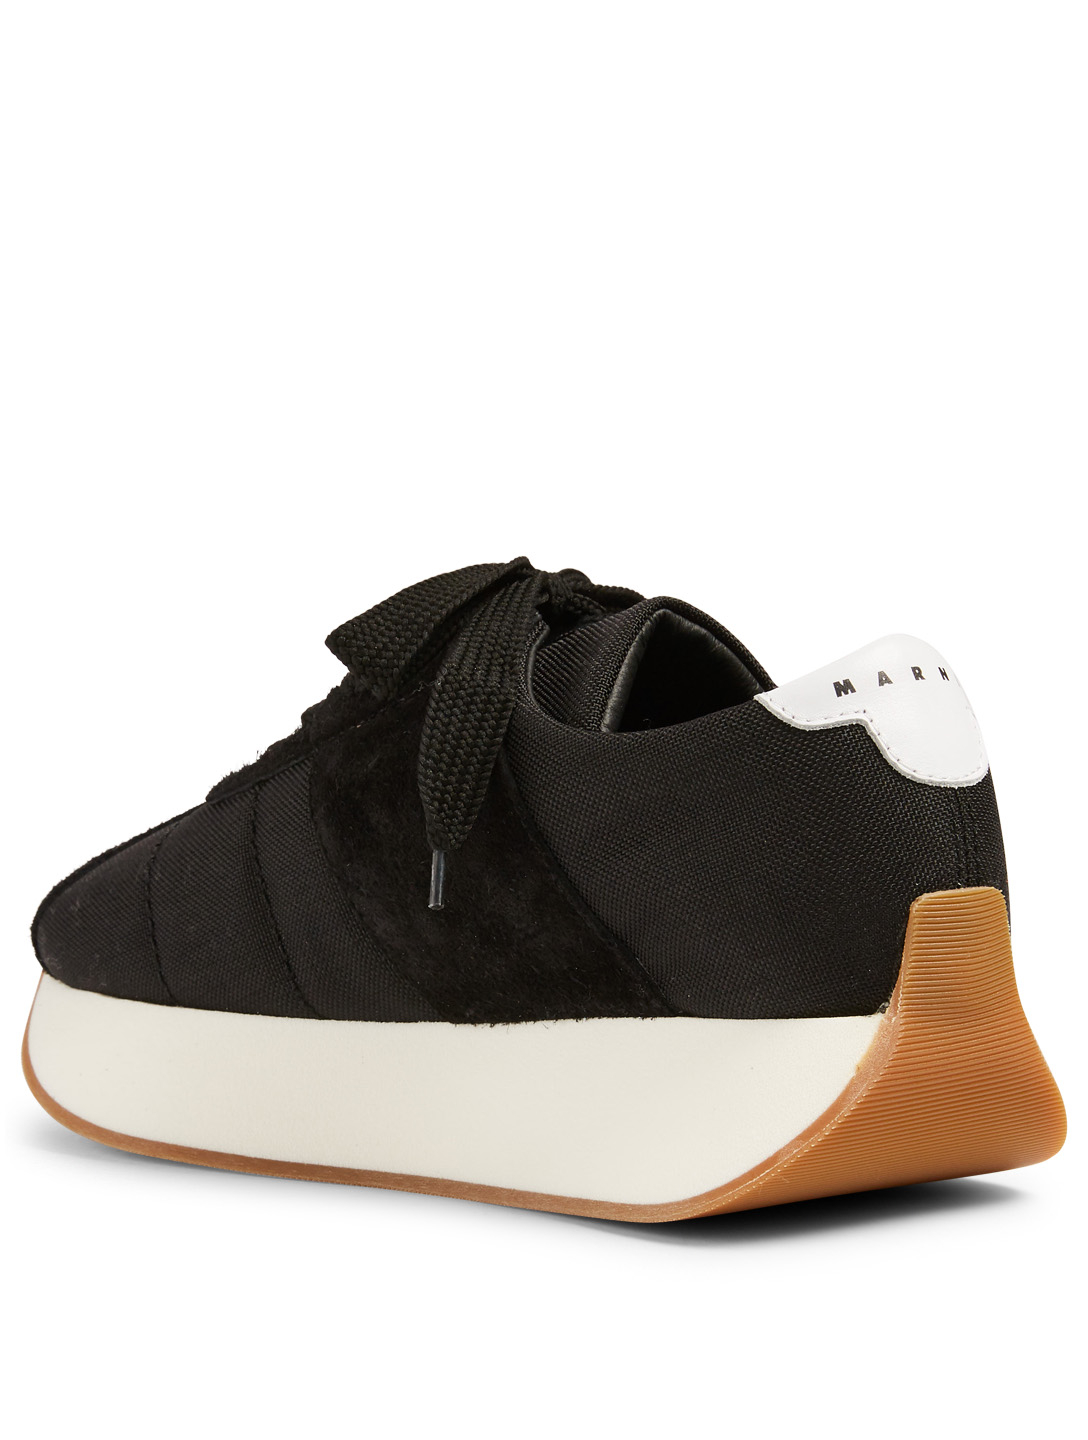 MARNI DANCE BUNNY Big Foot Nylon Sneakers With Bunny Patch Men's Black